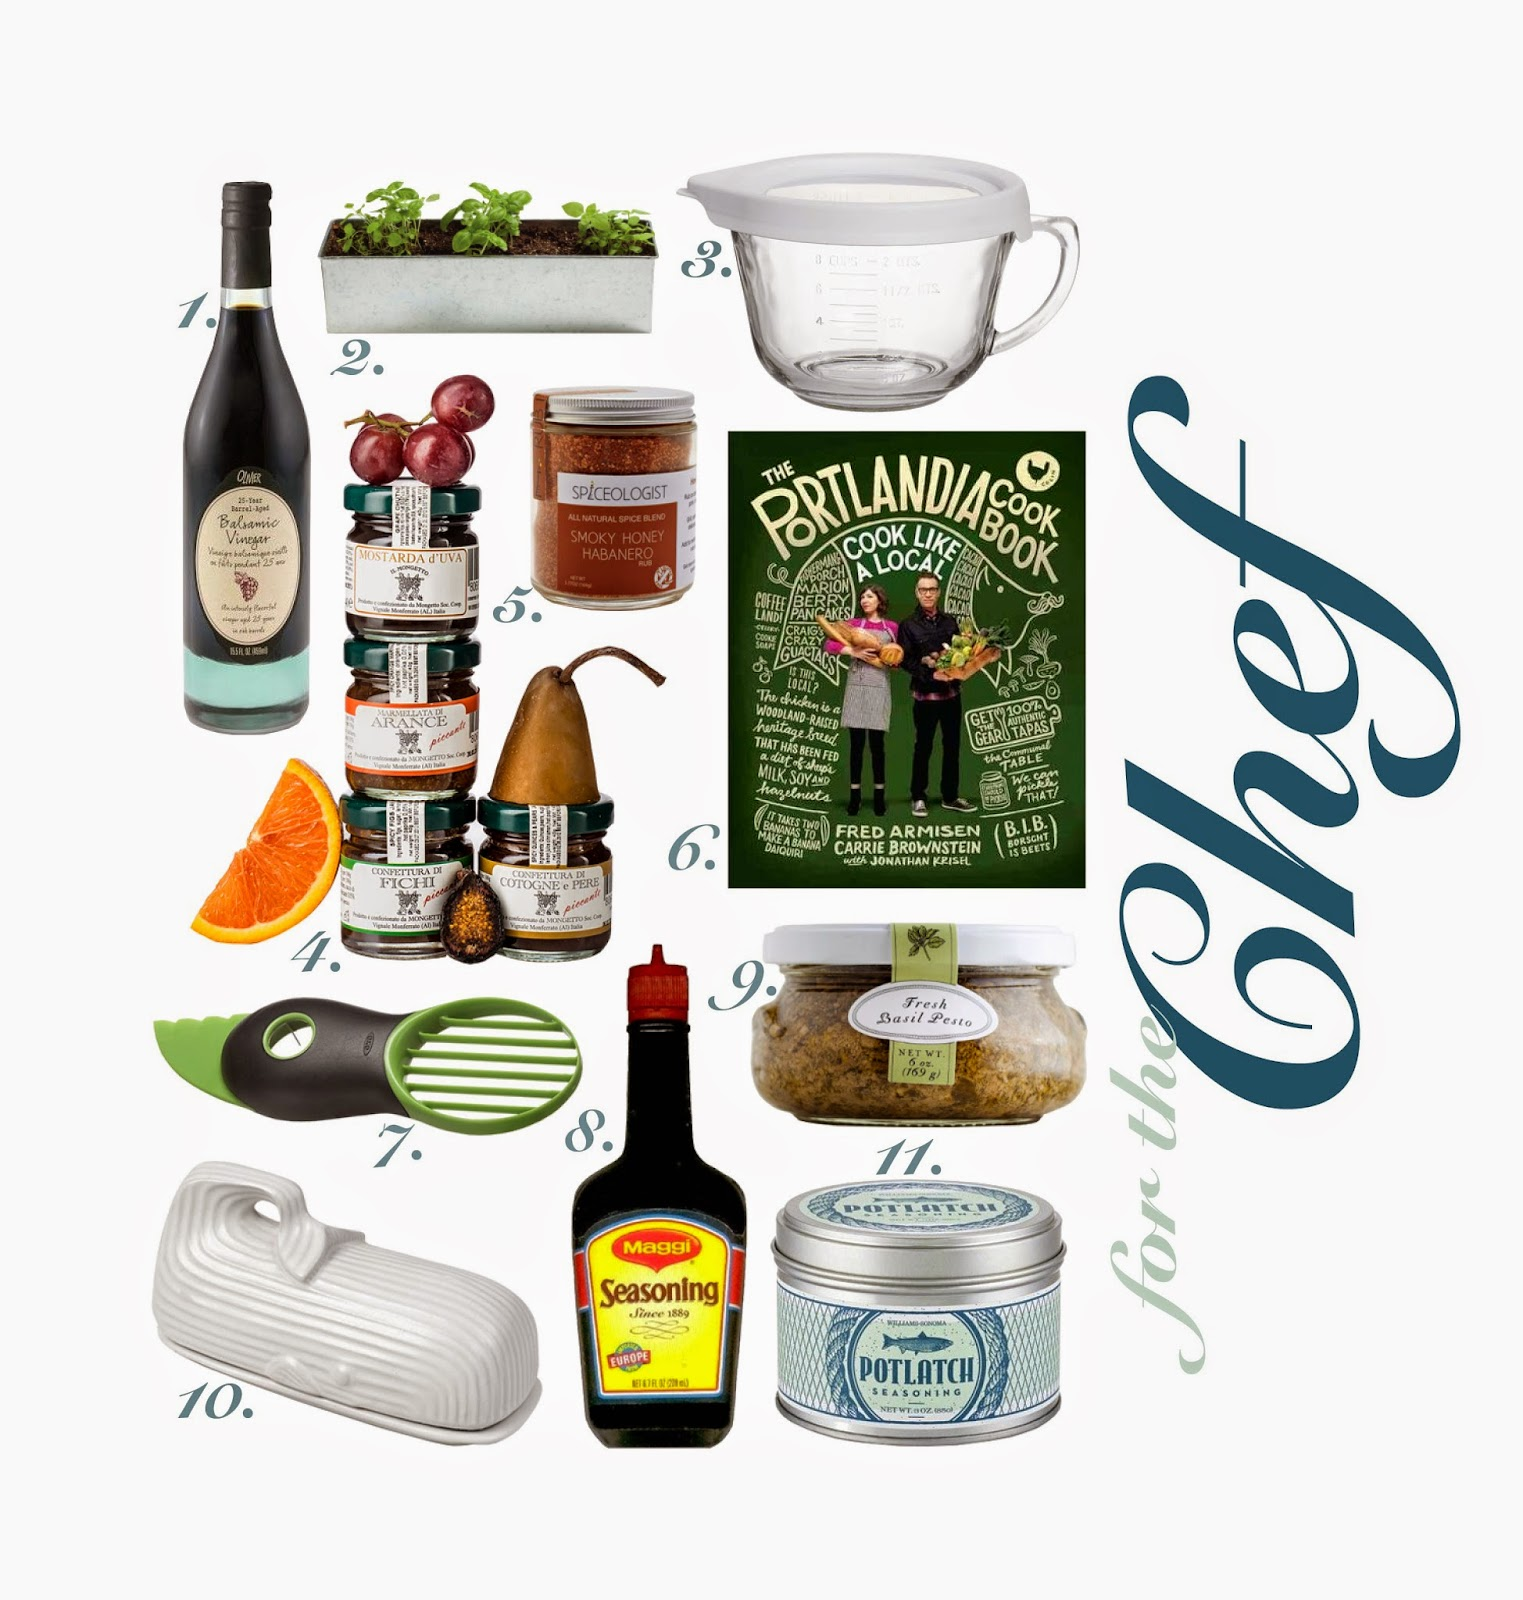 chef-gift-guide, gift-guide-cook, 2014-gift-guide, cooking-gift-guide, holiday-gift-guide